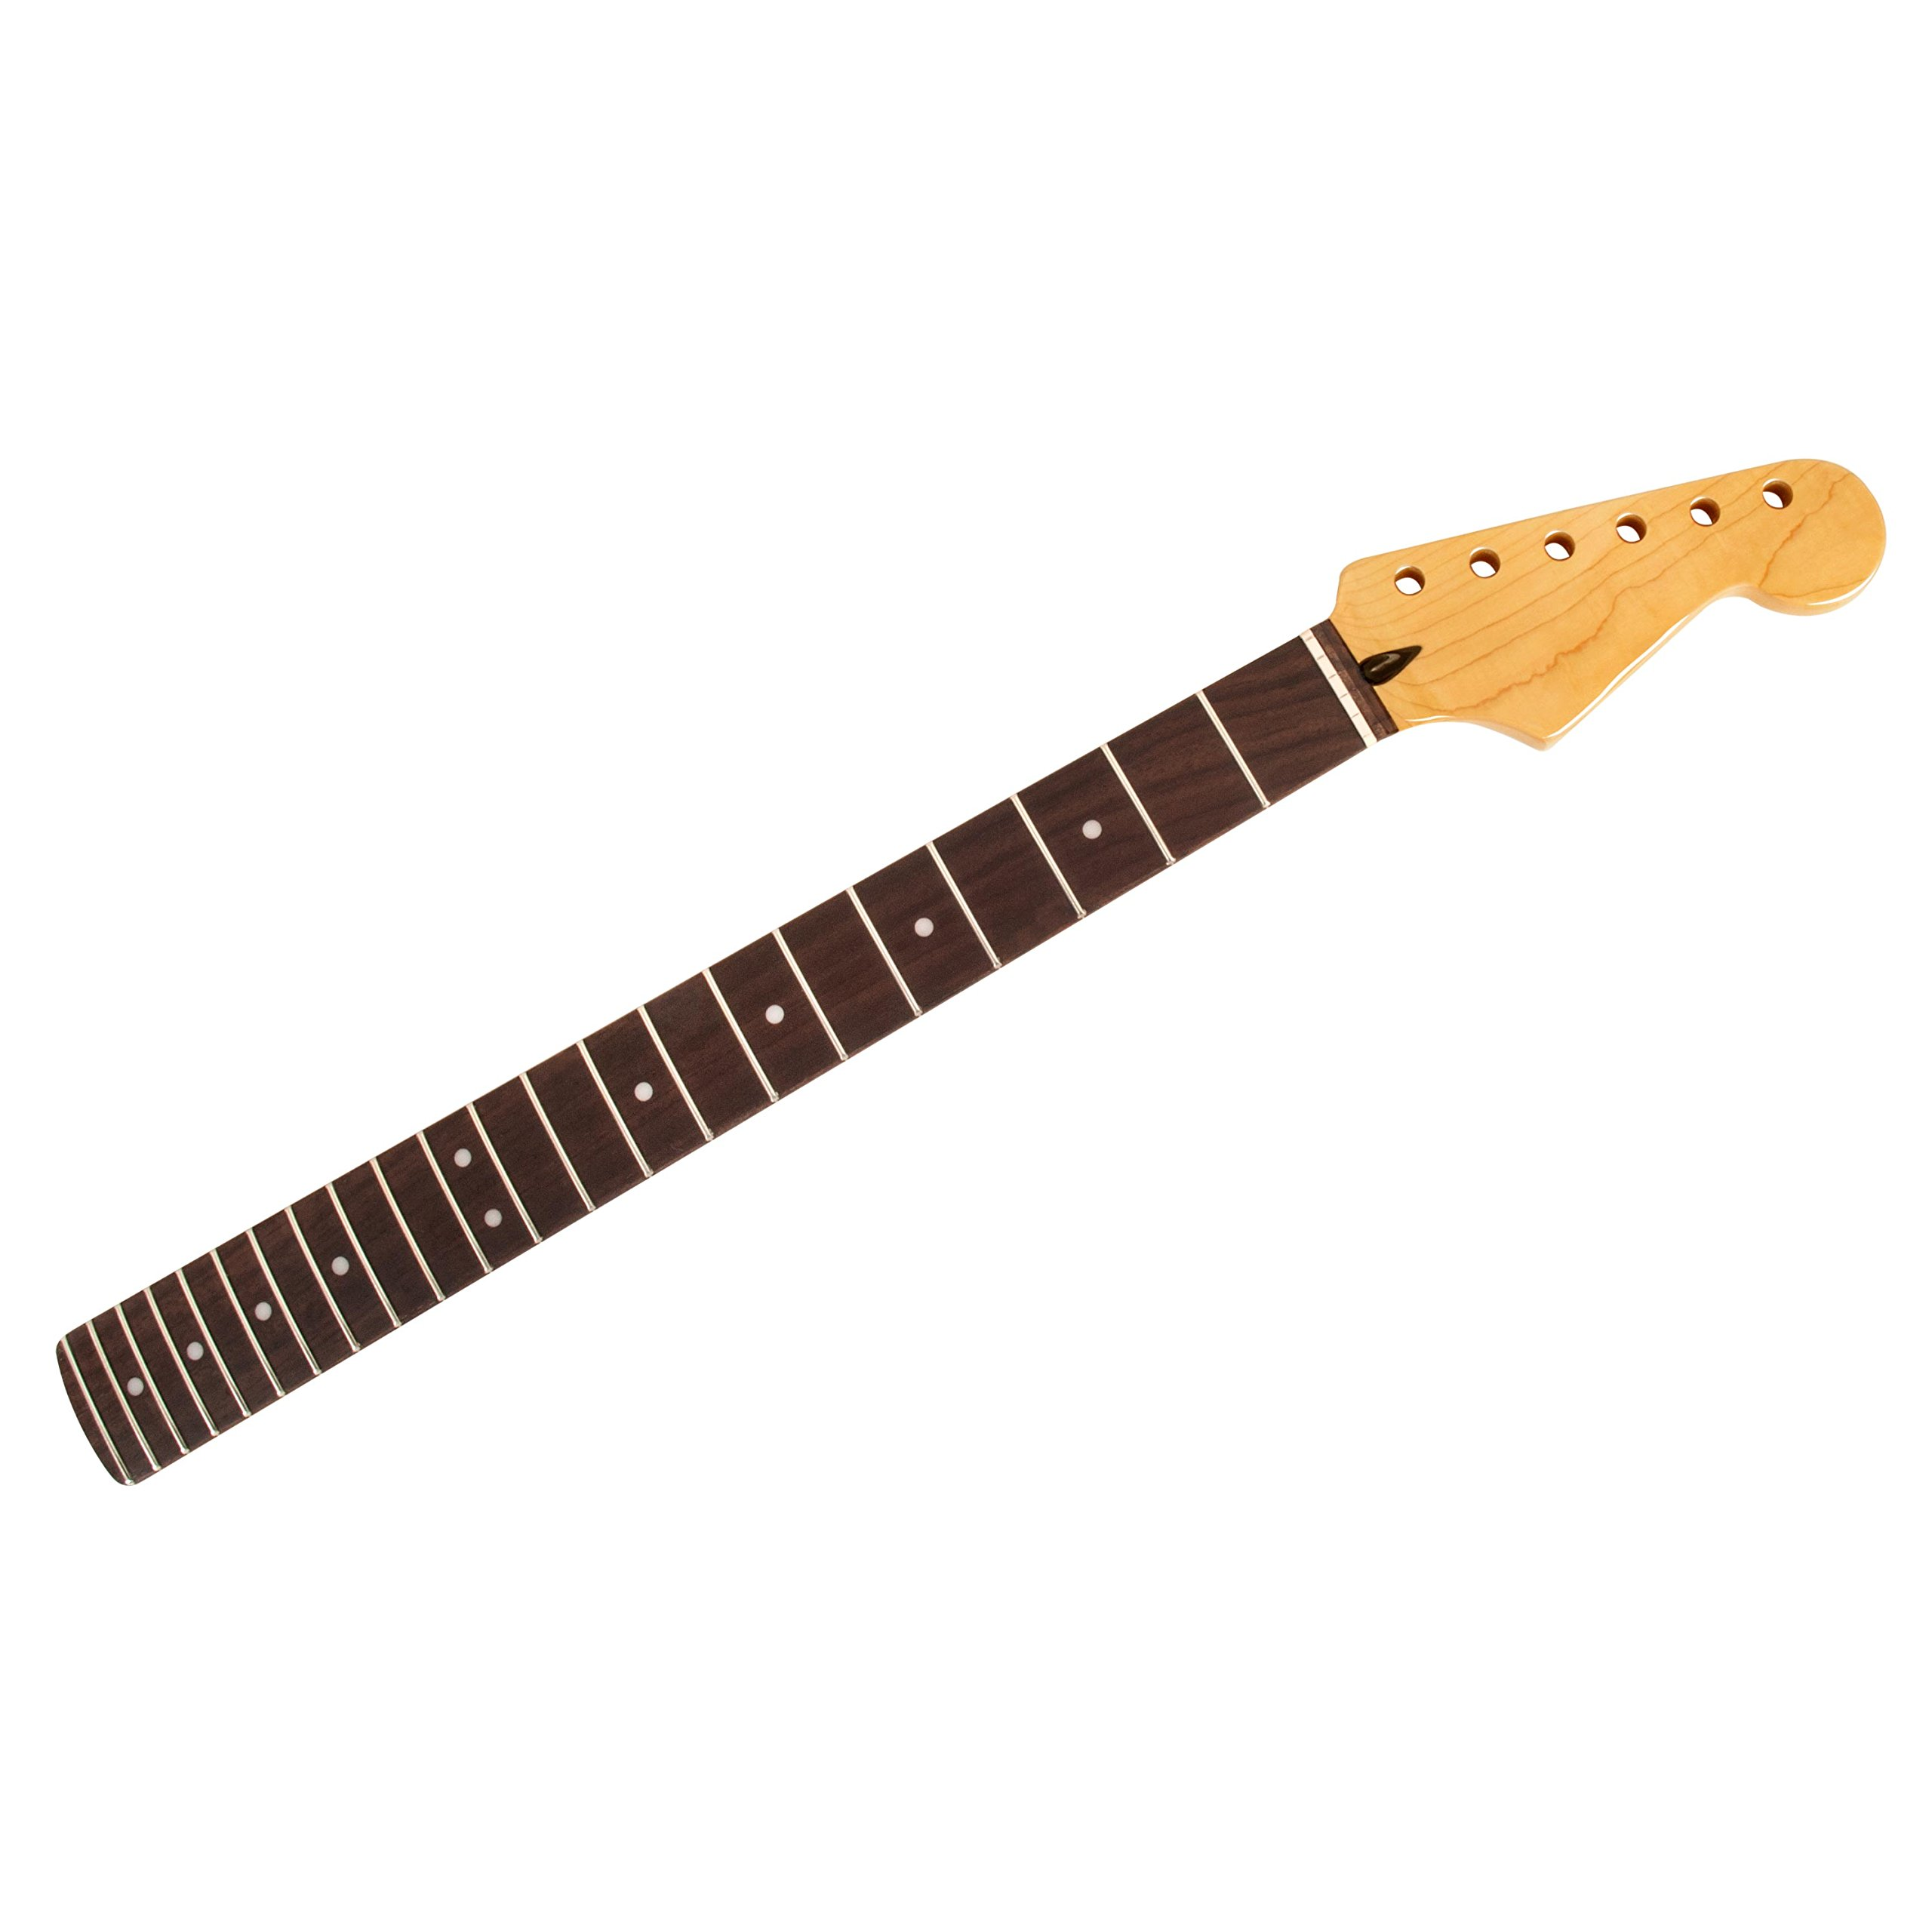 Mighty Mite Vintage Amber Neck for Strat, Rosewood Fingerboard